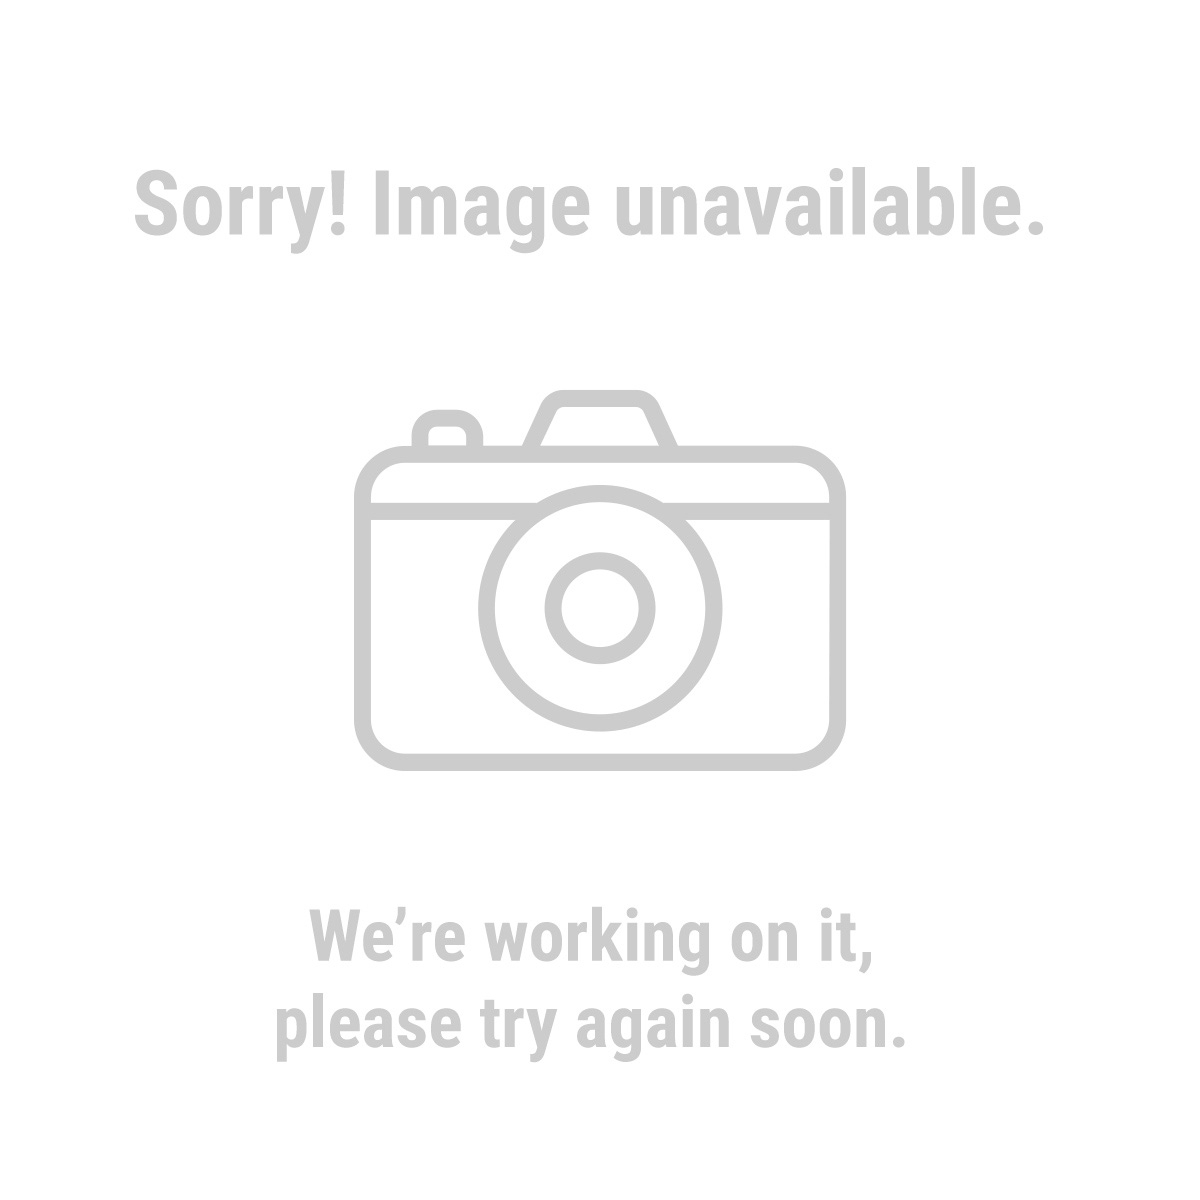 Harbor Freight Portable Tire Changer